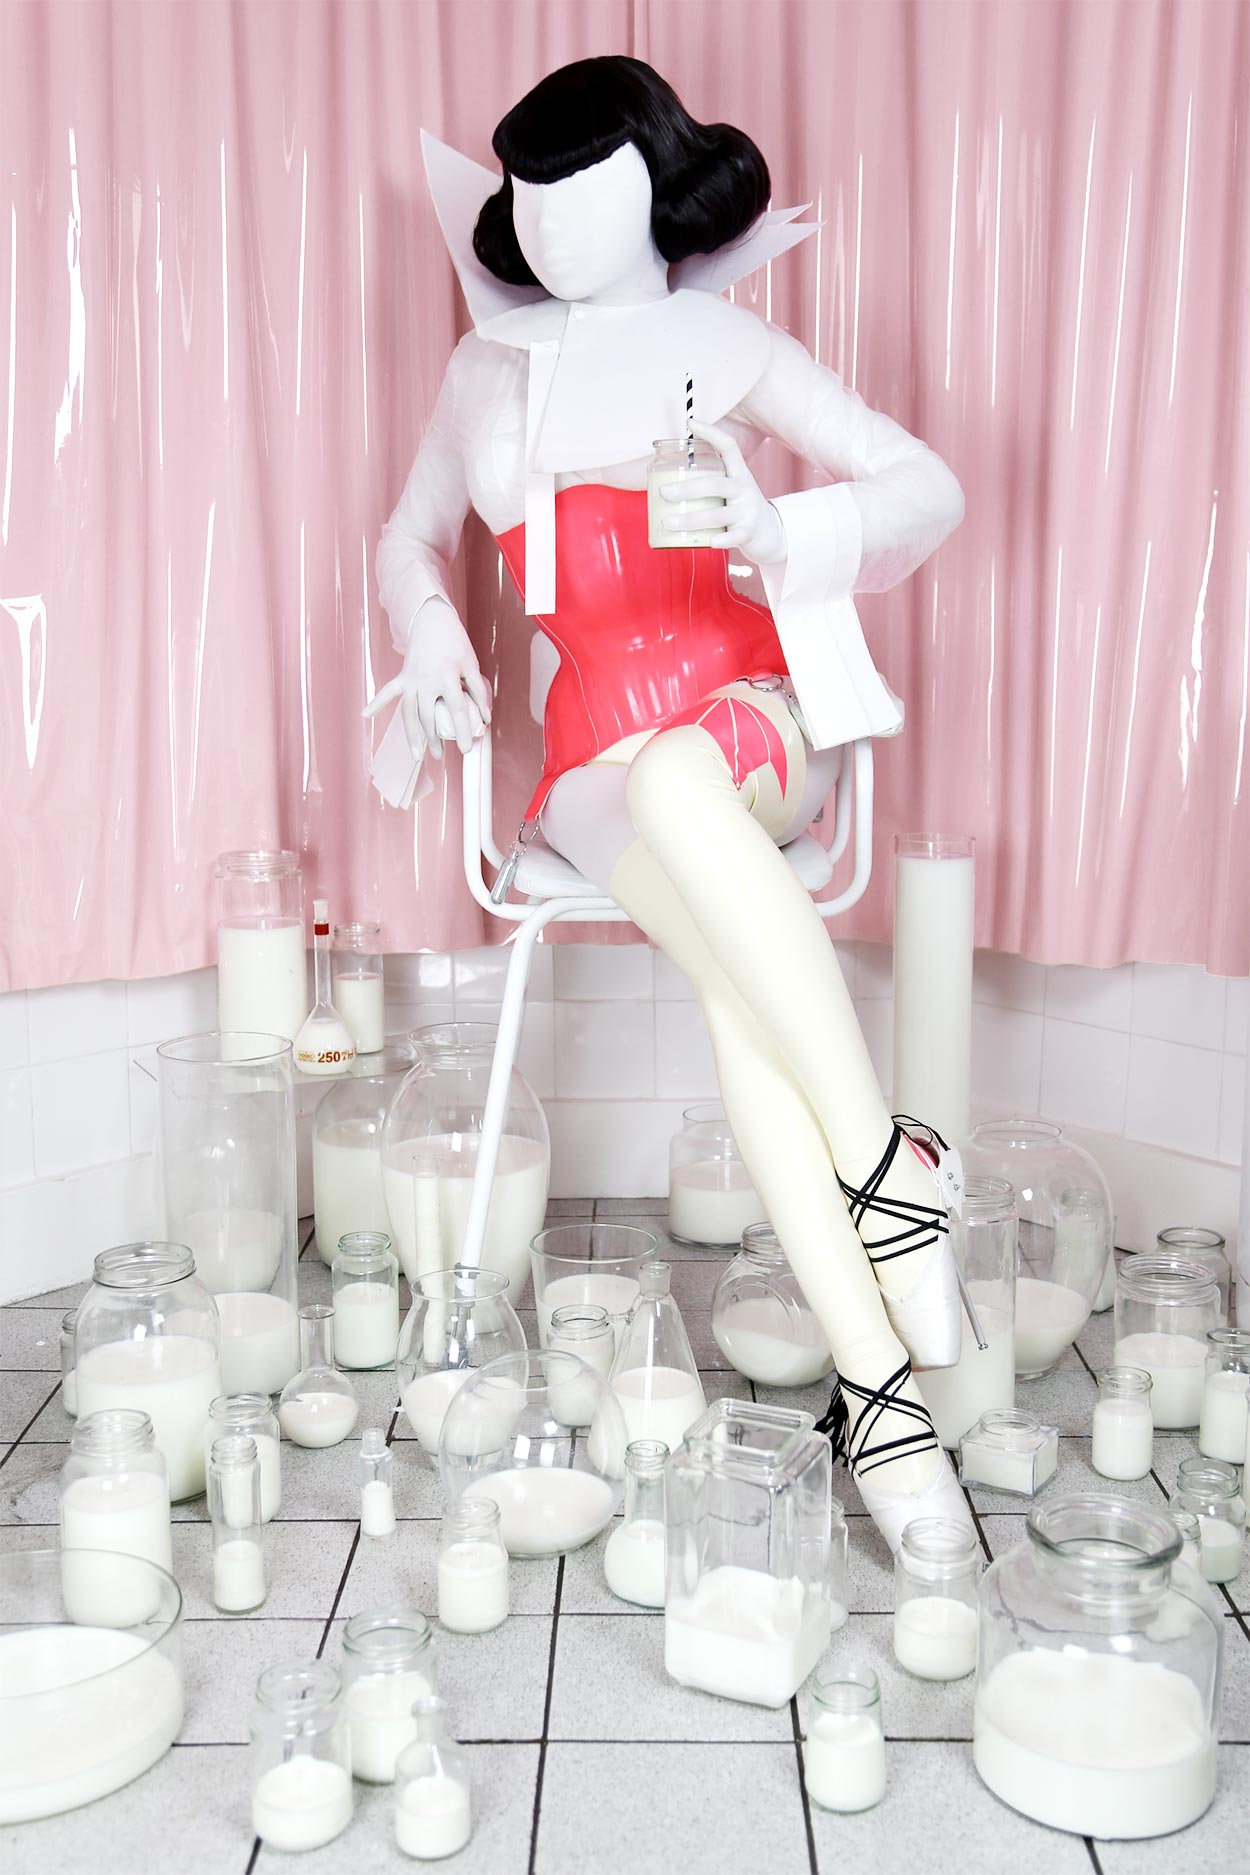 A doll-like woman is dressed in latex clothes and corset made by Milkshaken.net, is seated, surrounded by jars full of milk.